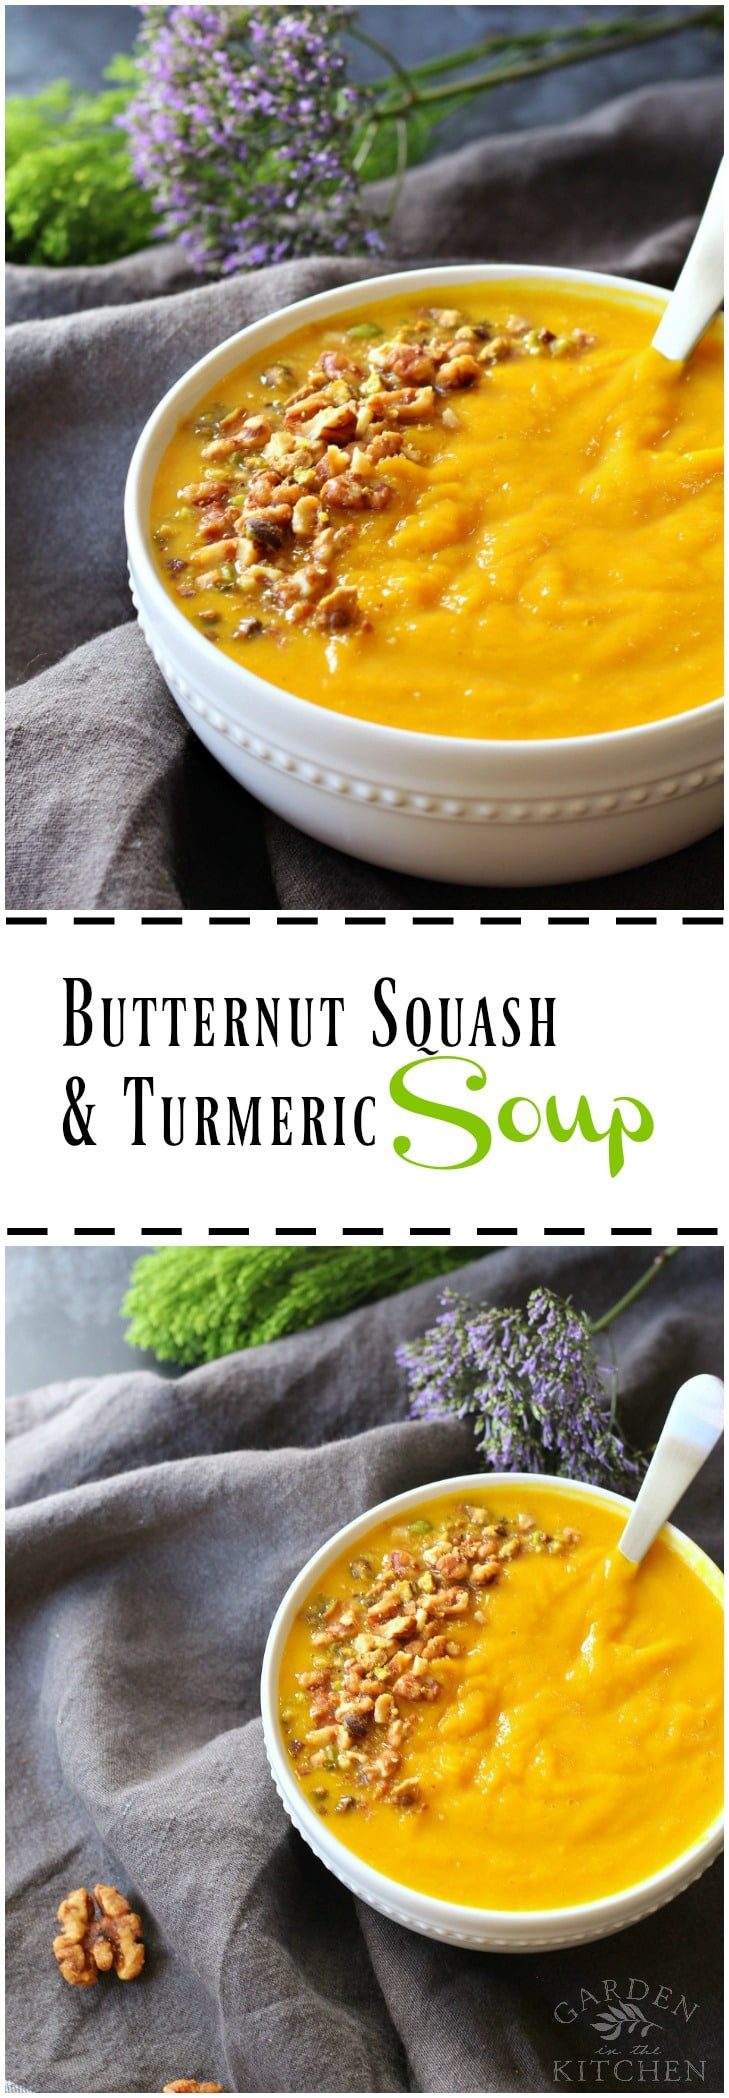 Is Butternut Squash Healthy  Butternut Squash & Turmeric Healthy Soup